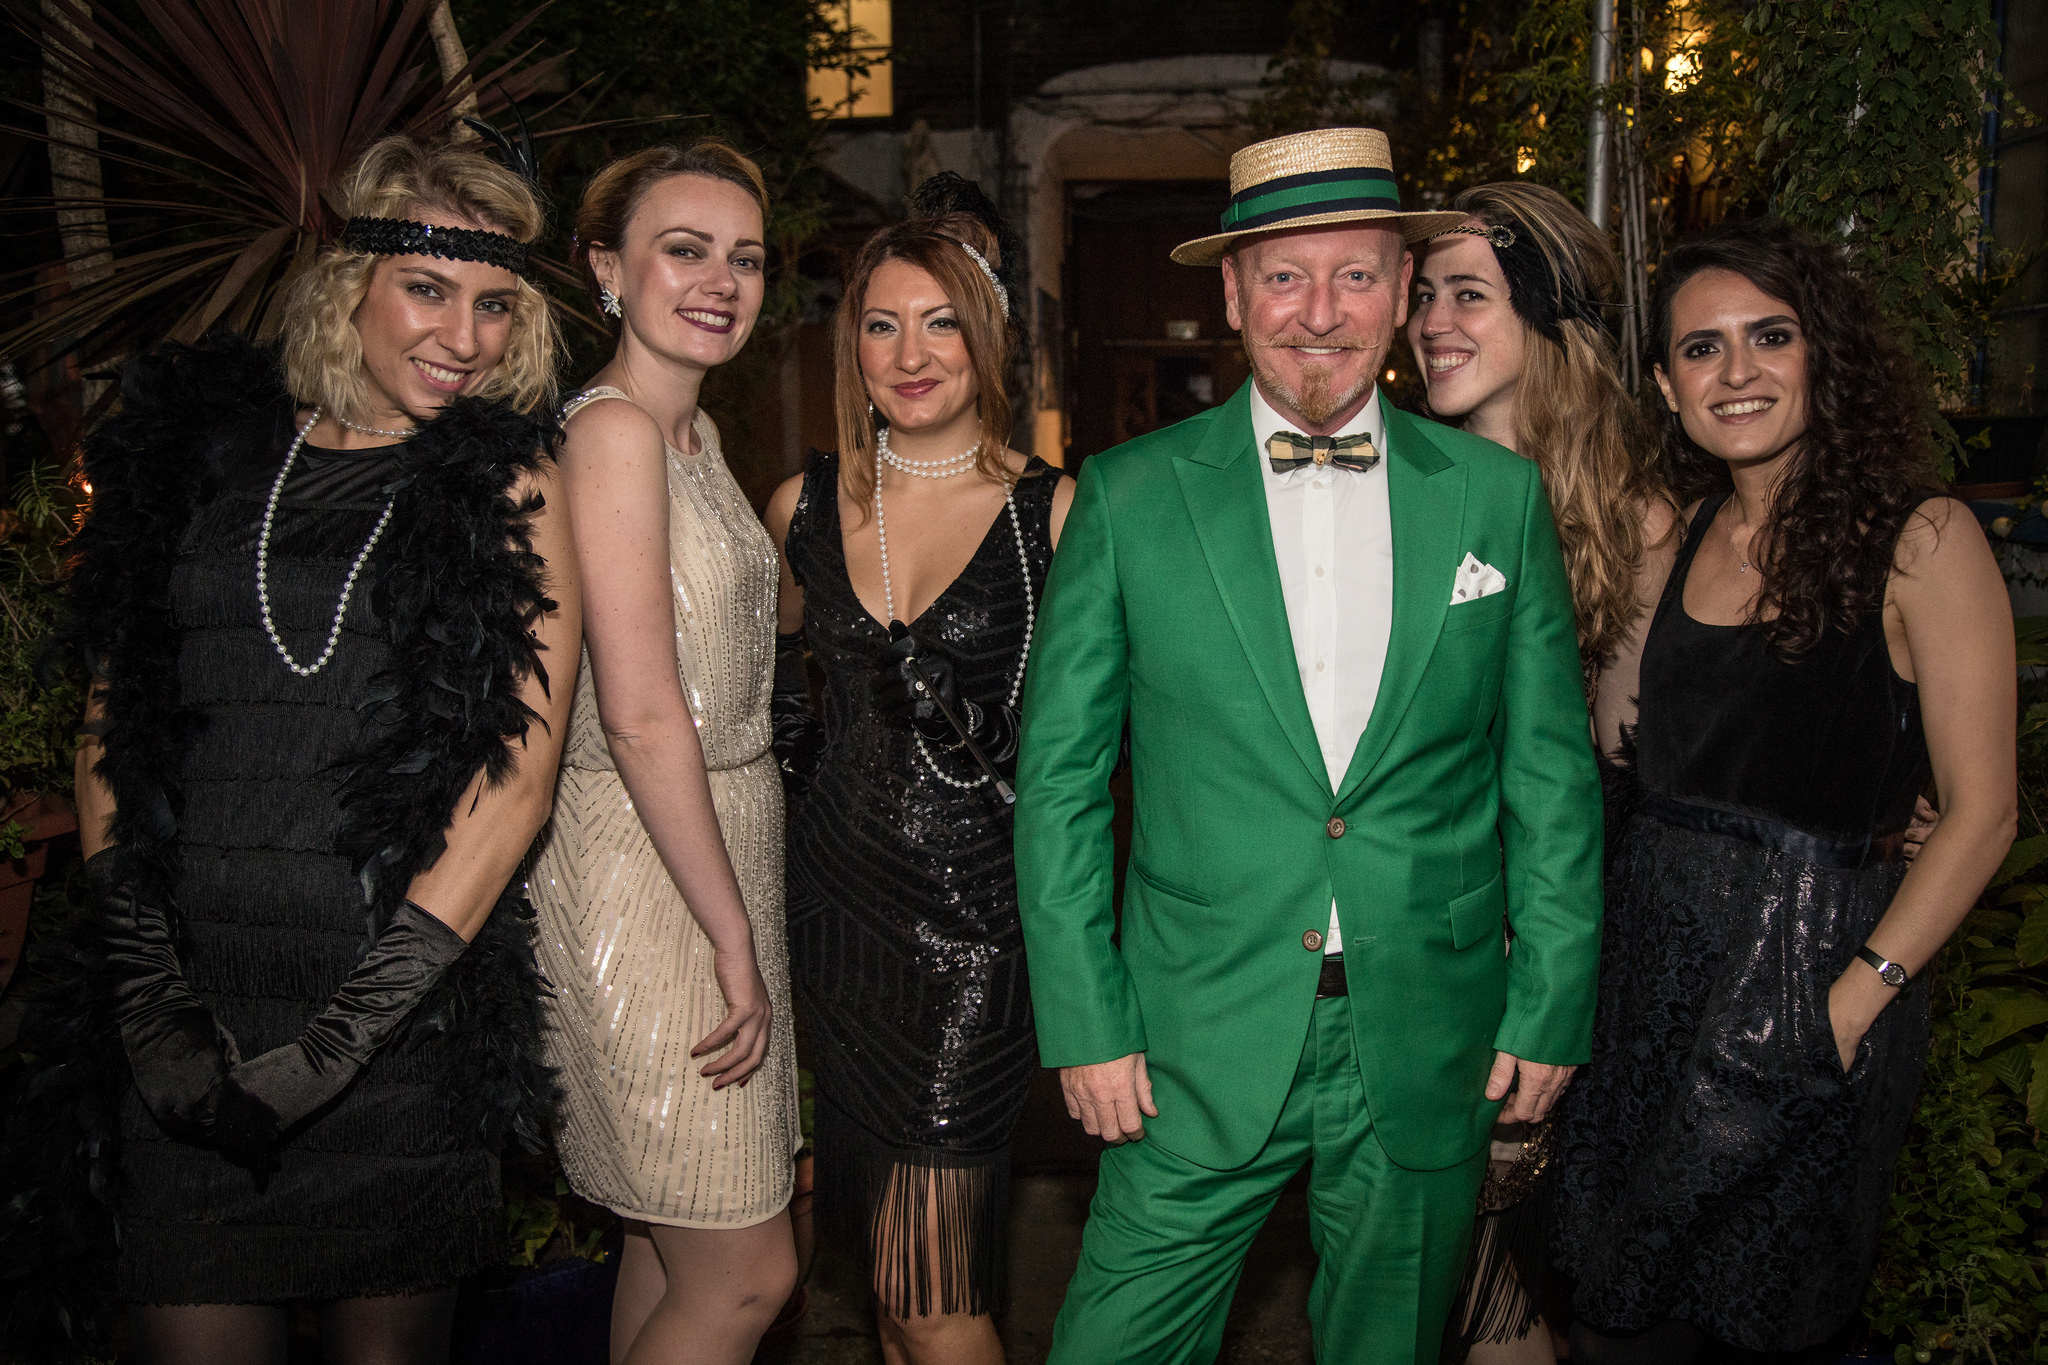 Glamorous ladies and a gentleman in a green suit